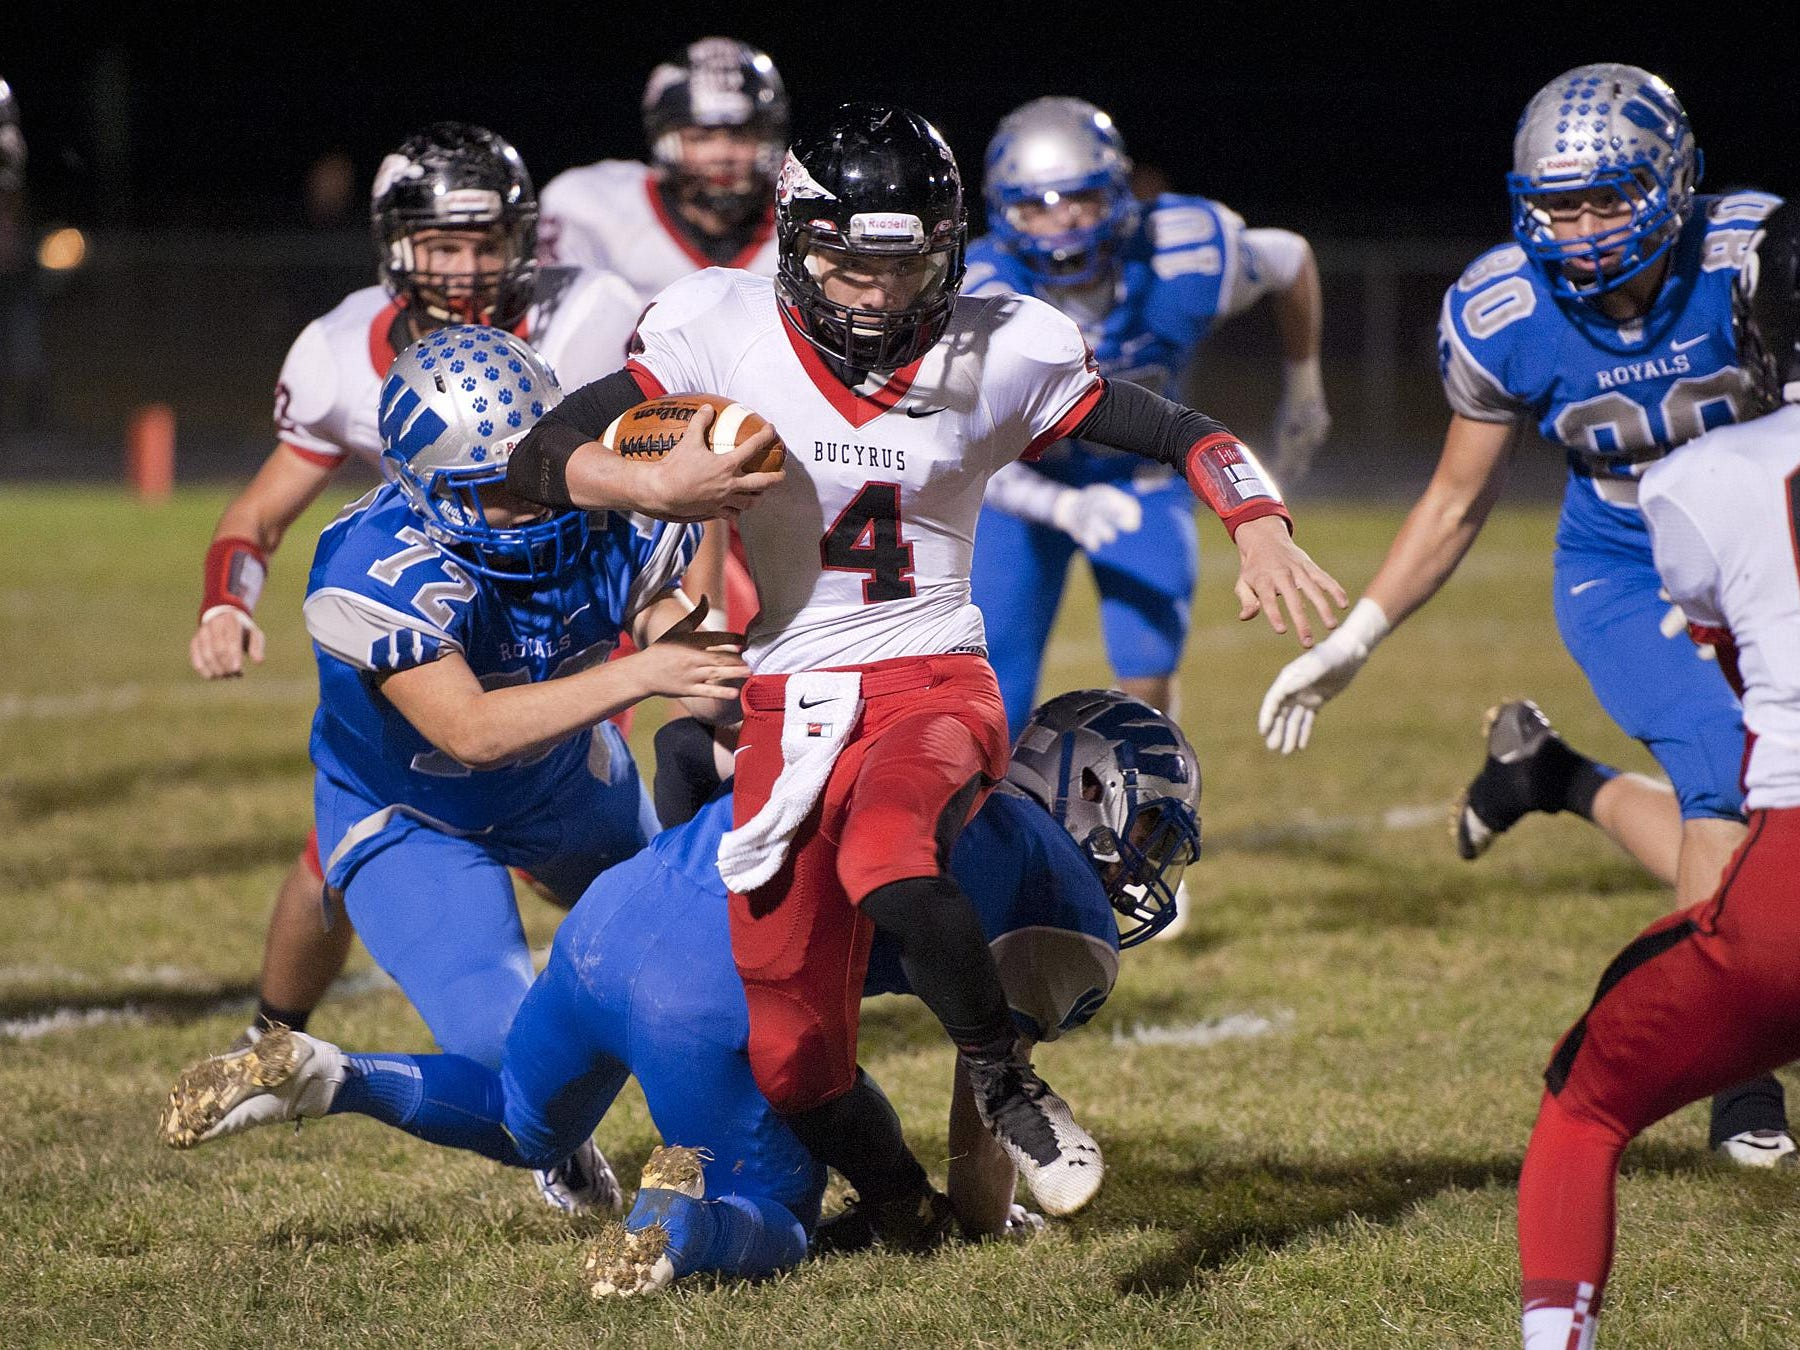 Bucyrus' Damon Parsell runs the ball early in the first quarter.